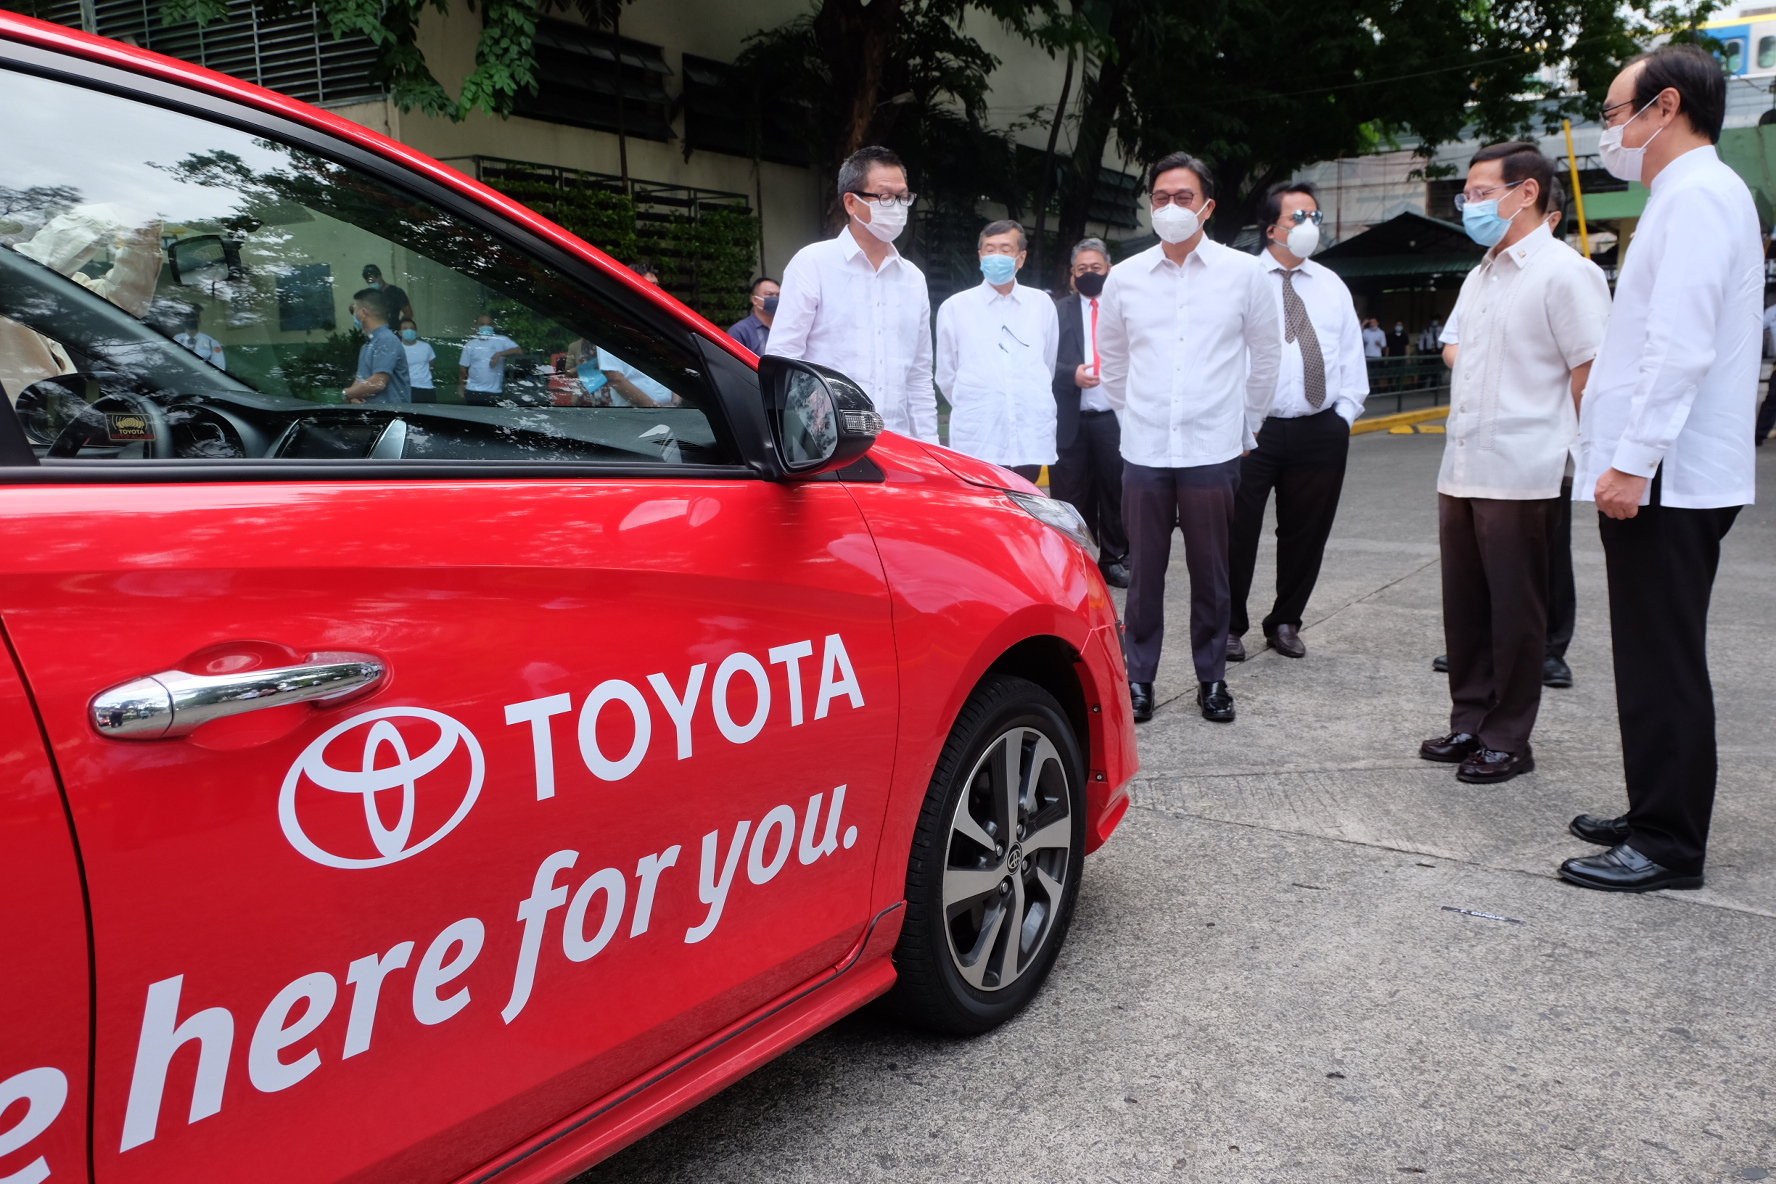 Toyota PH partners with DOH in fight against COVID-19,  donates 30 Vios units to public hospitals